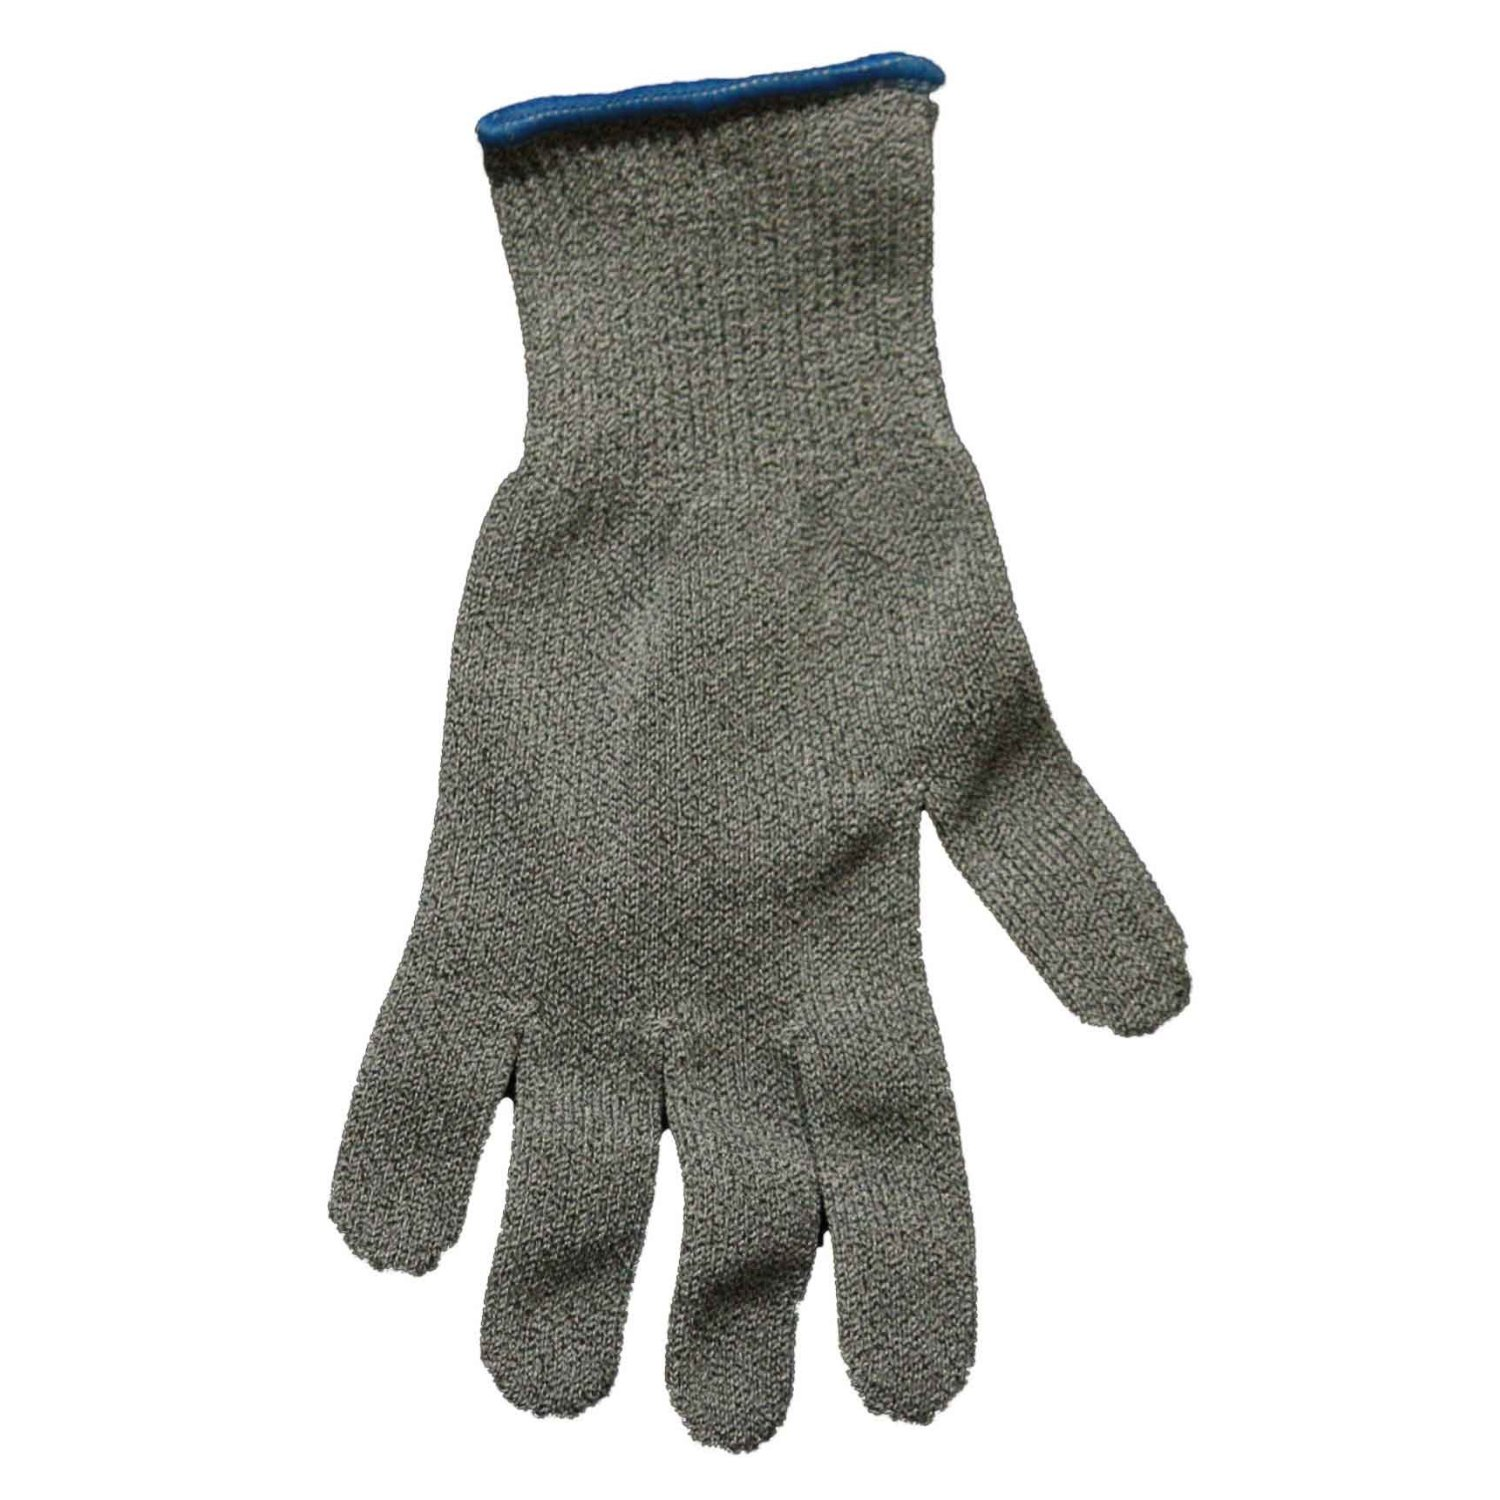 Cut Protection Gloves Cut Resistant Glove